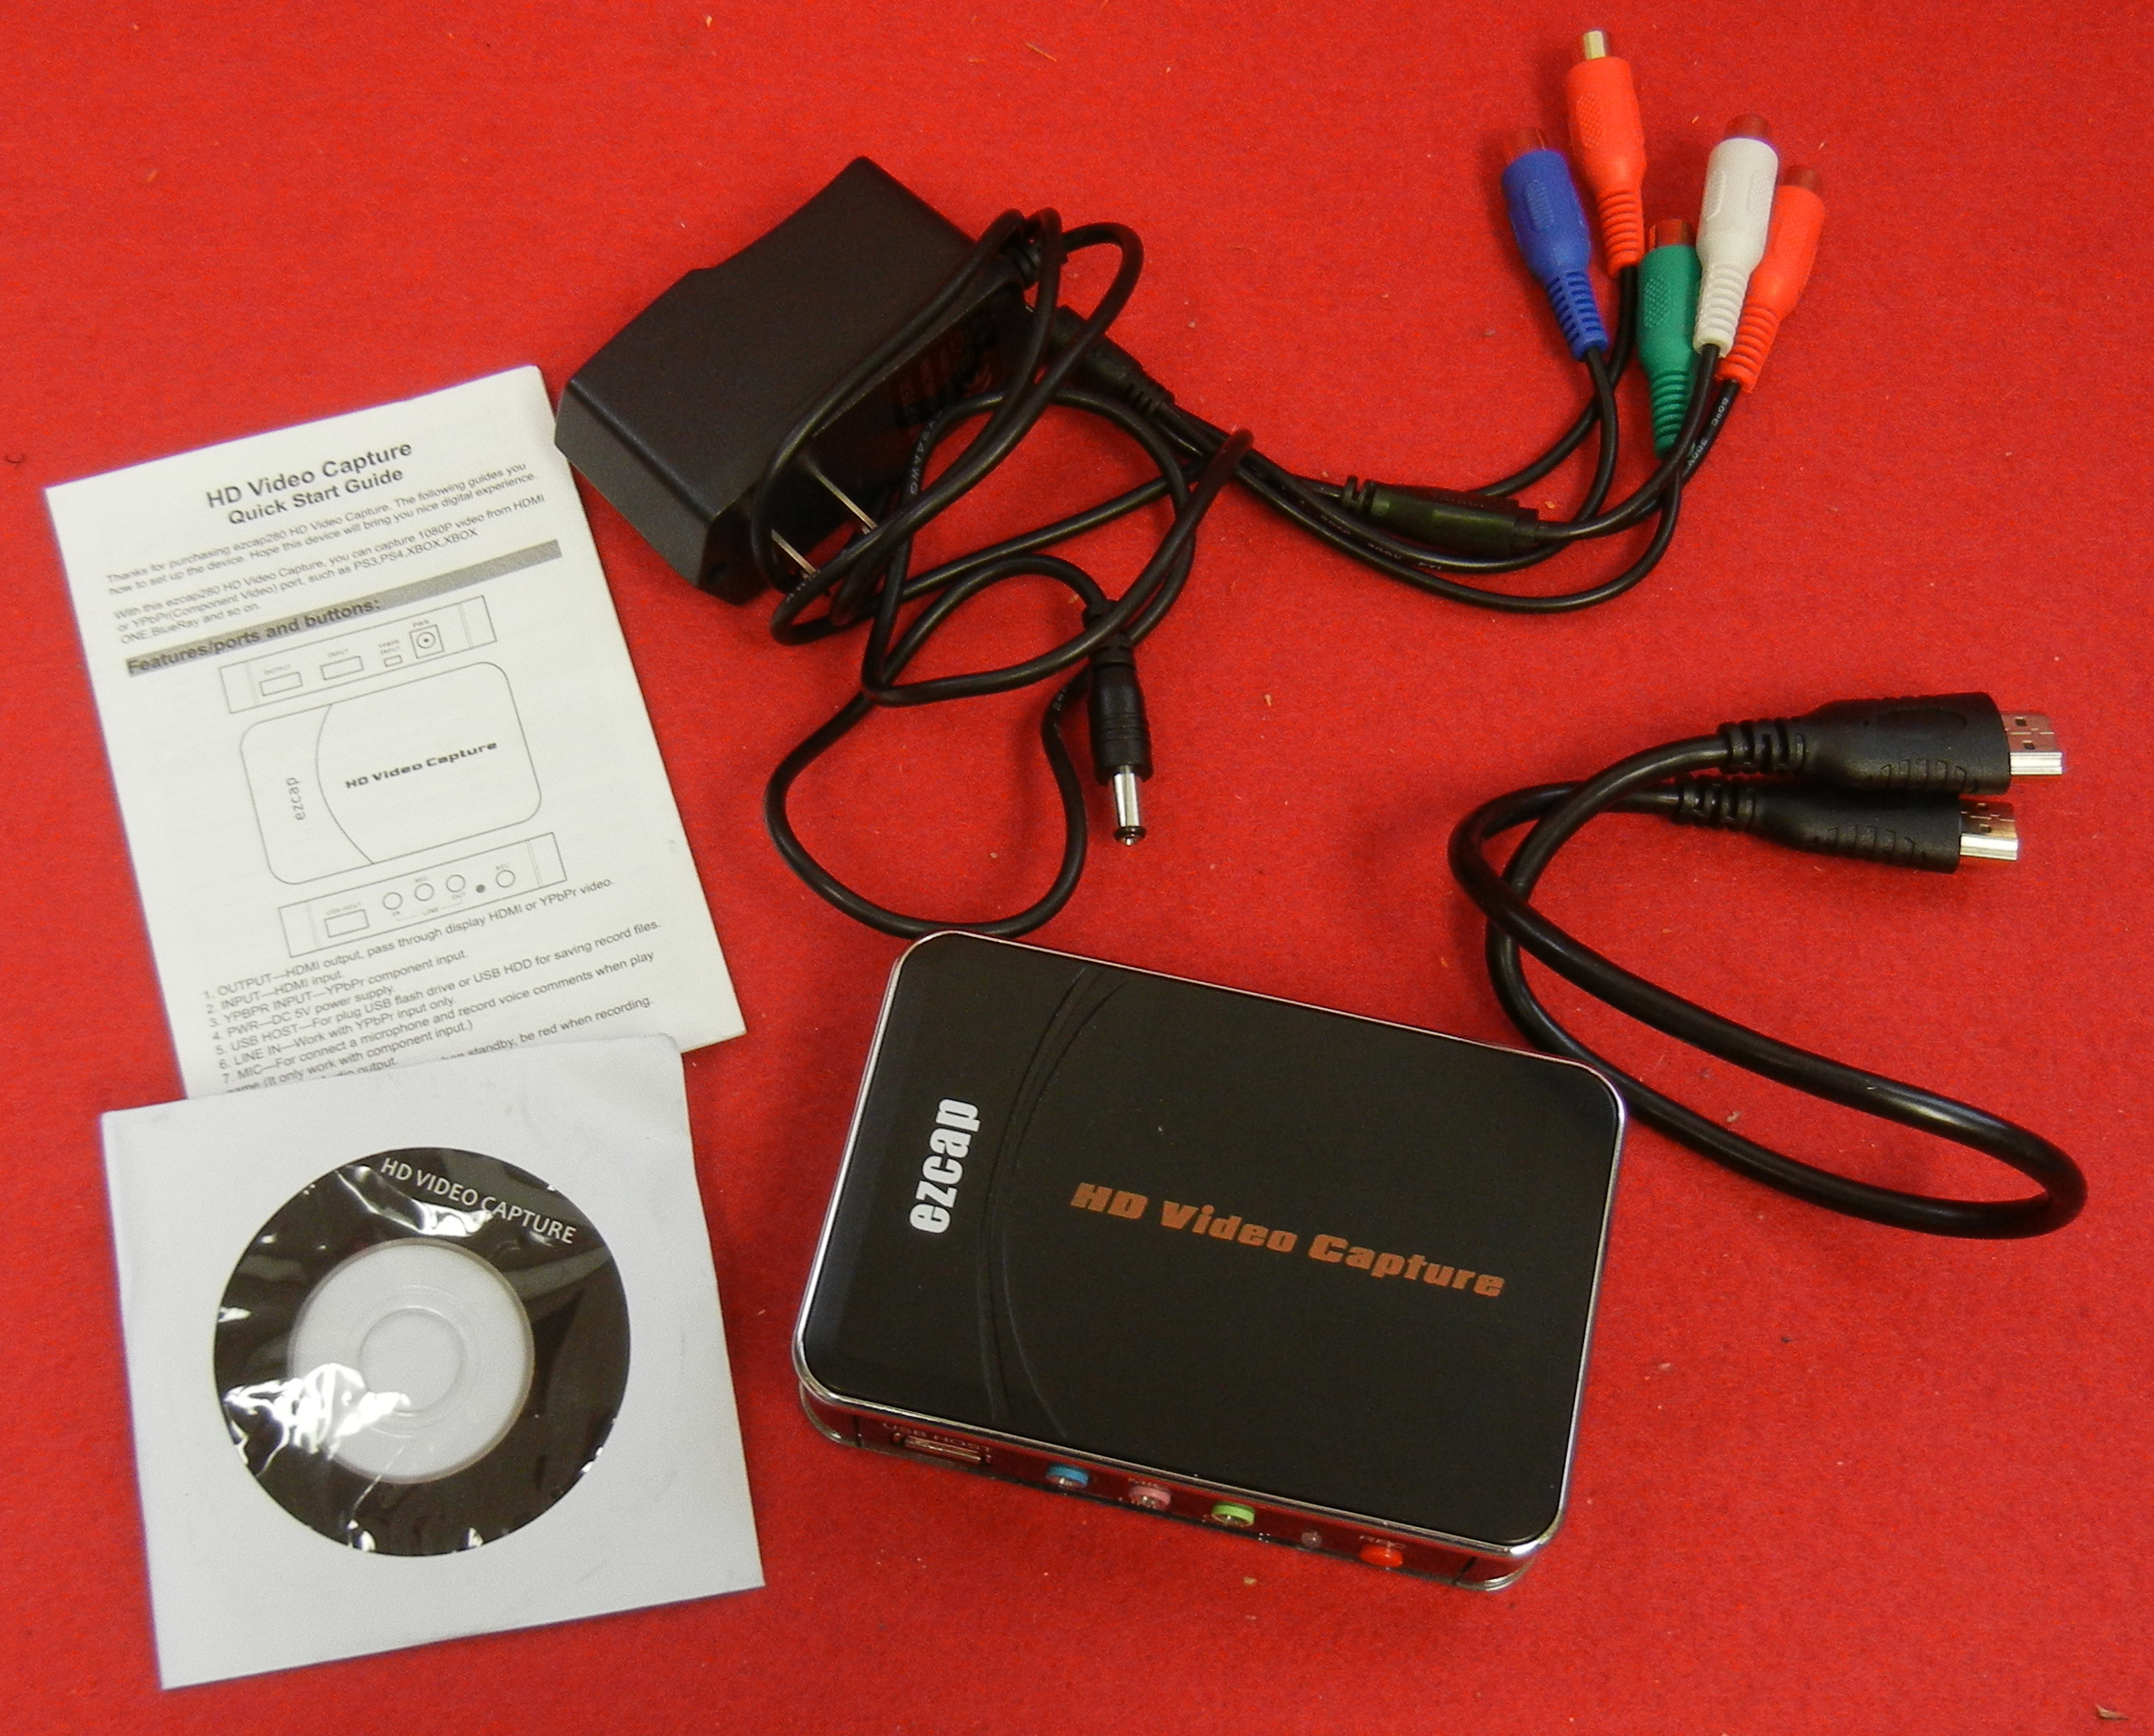 EZCAP -280 VIDEO CAPTURE CARD